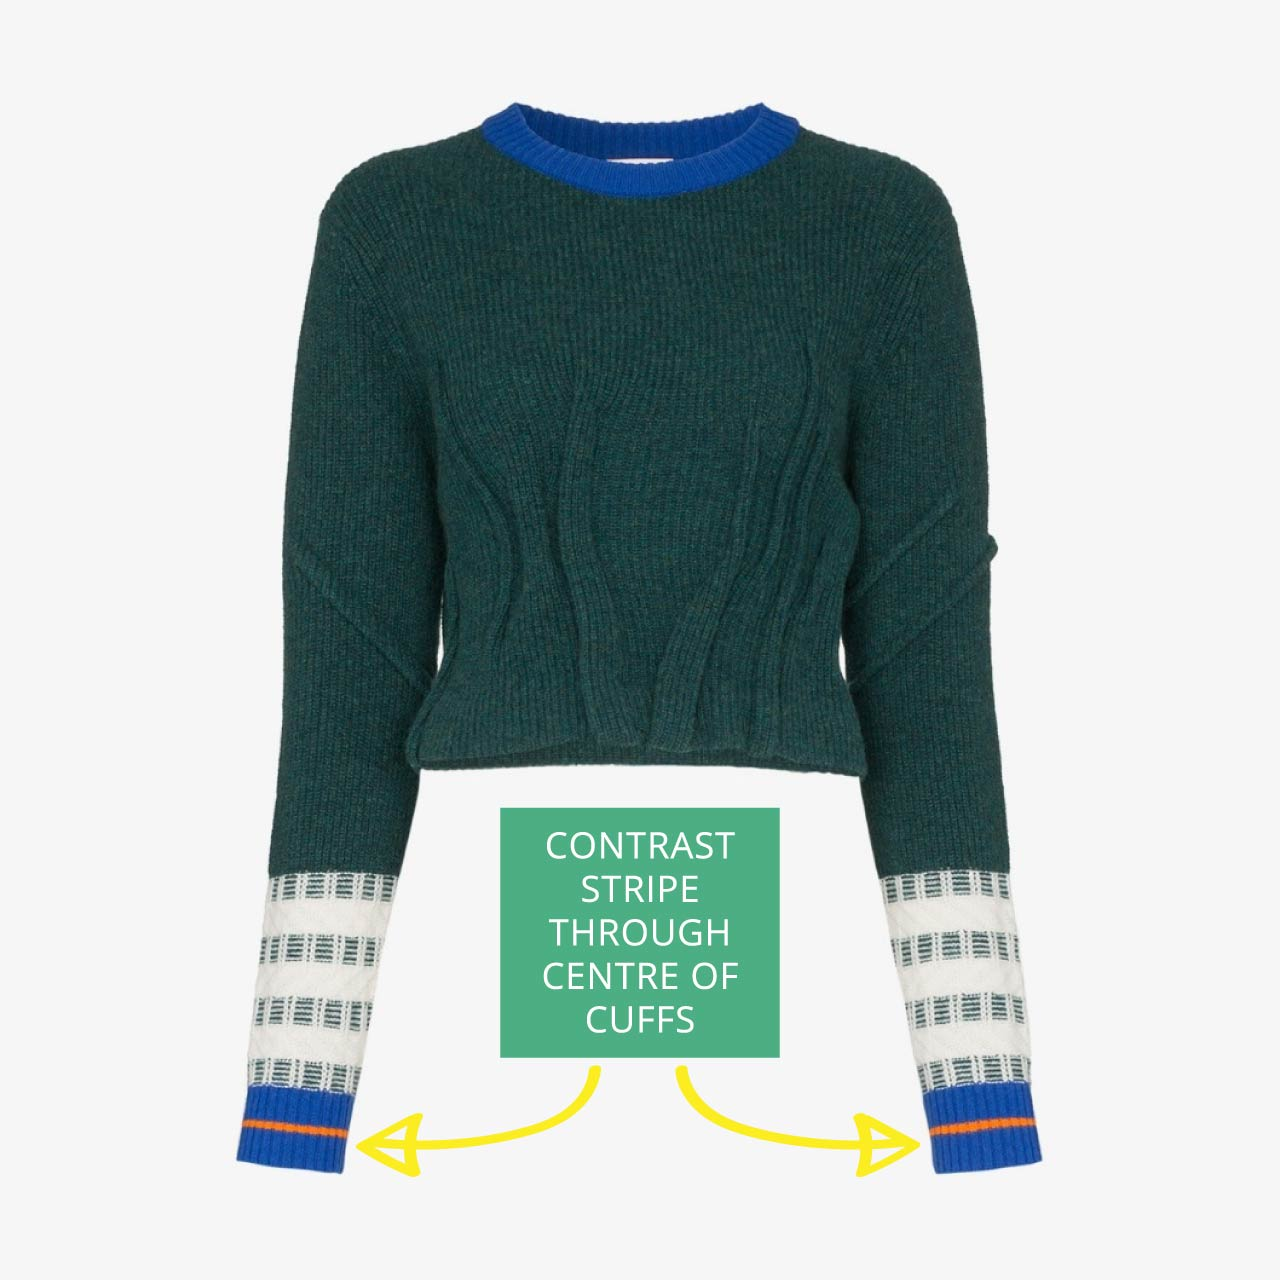 i-am-chen knitwear with contrast stripe on cuffs. By designer Zhi Chen on The Cutting Class.